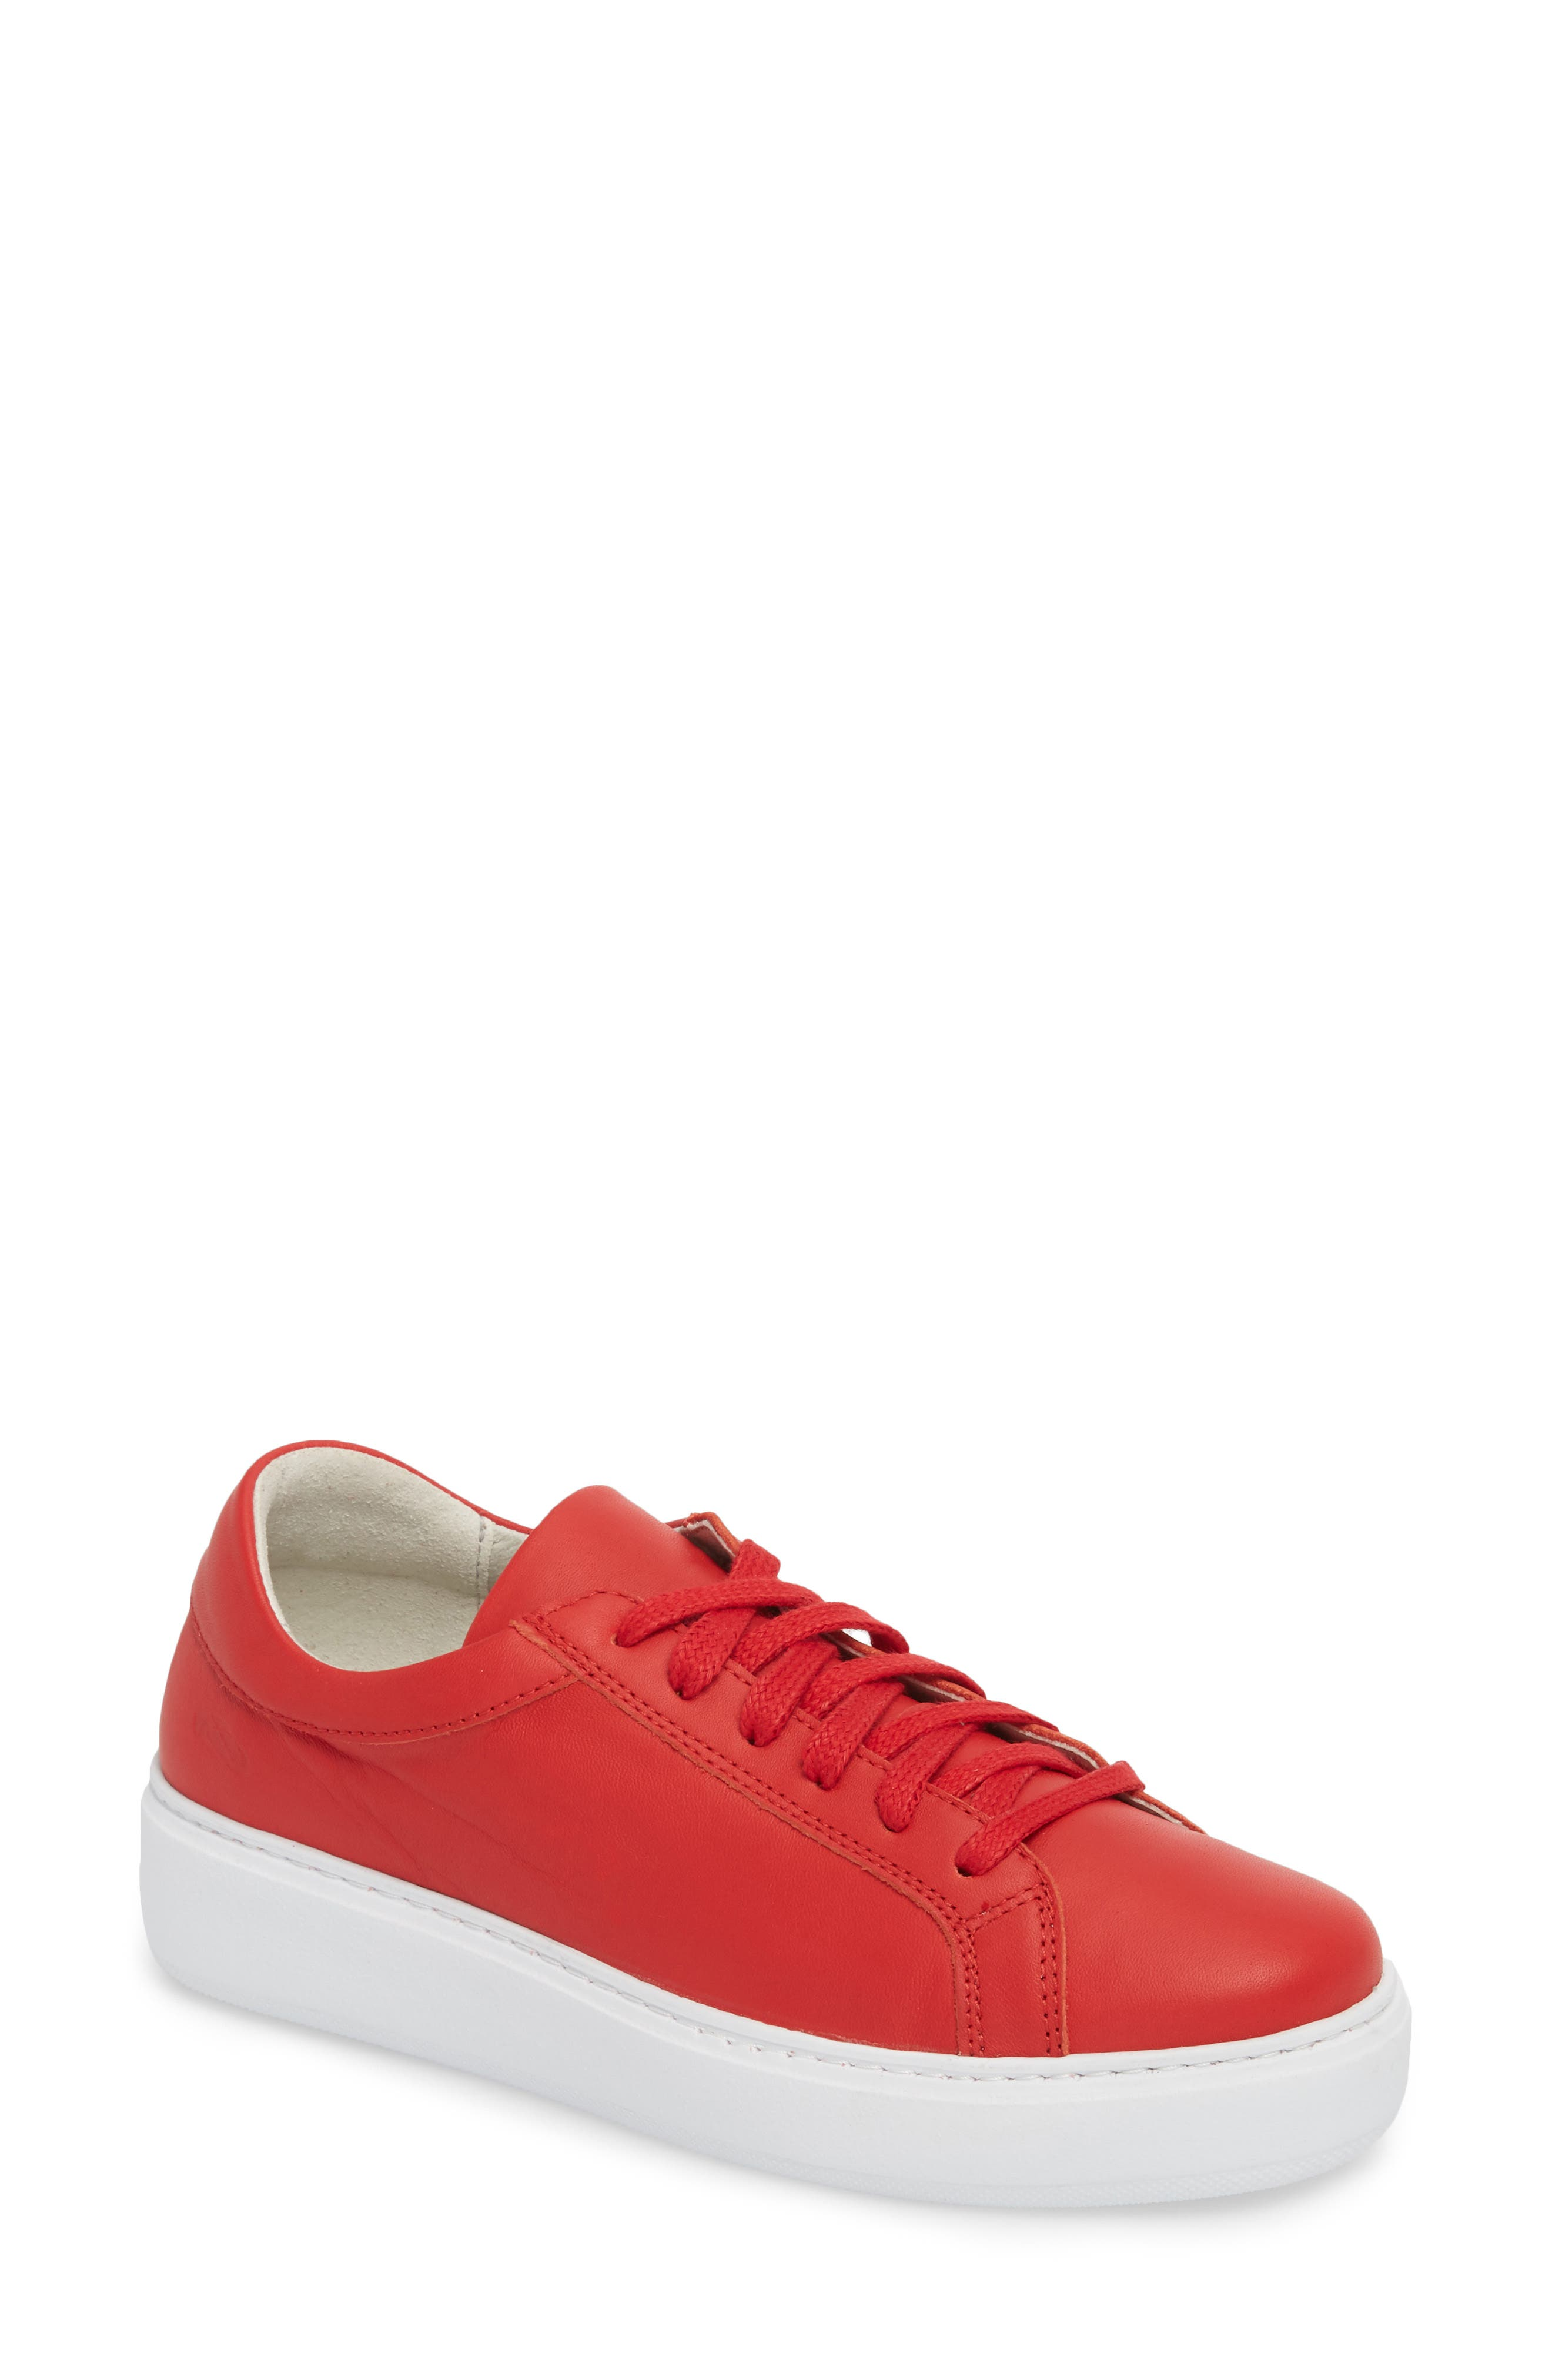 Tully Sneaker,                             Main thumbnail 1, color,                             Red Leather